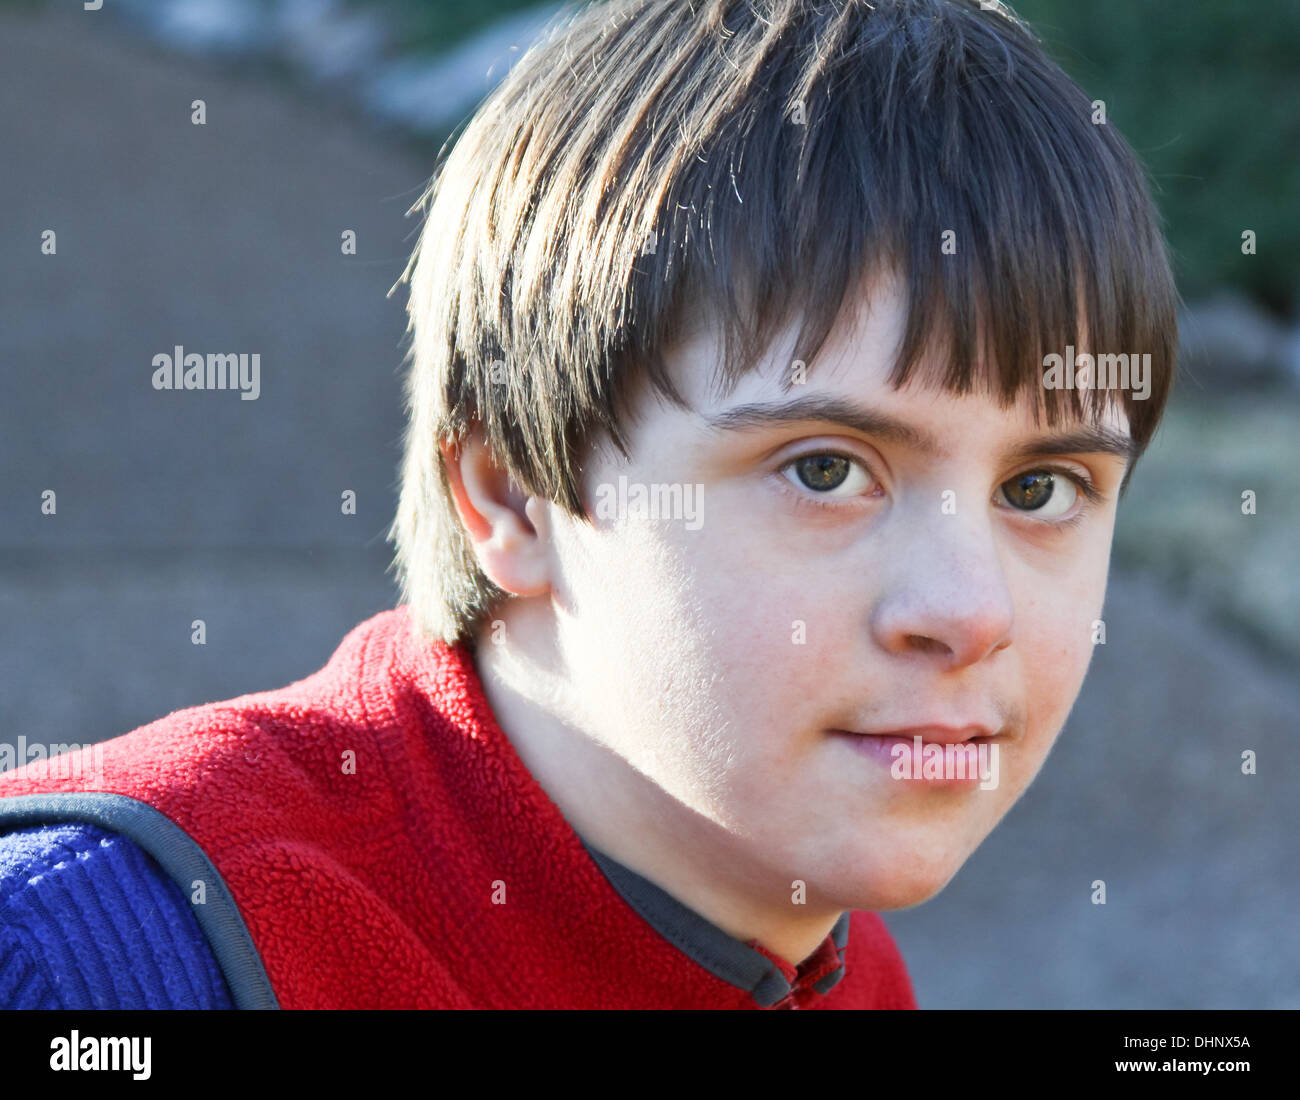 Handsome boy with Autism and Down's Syndrome - Stock Image